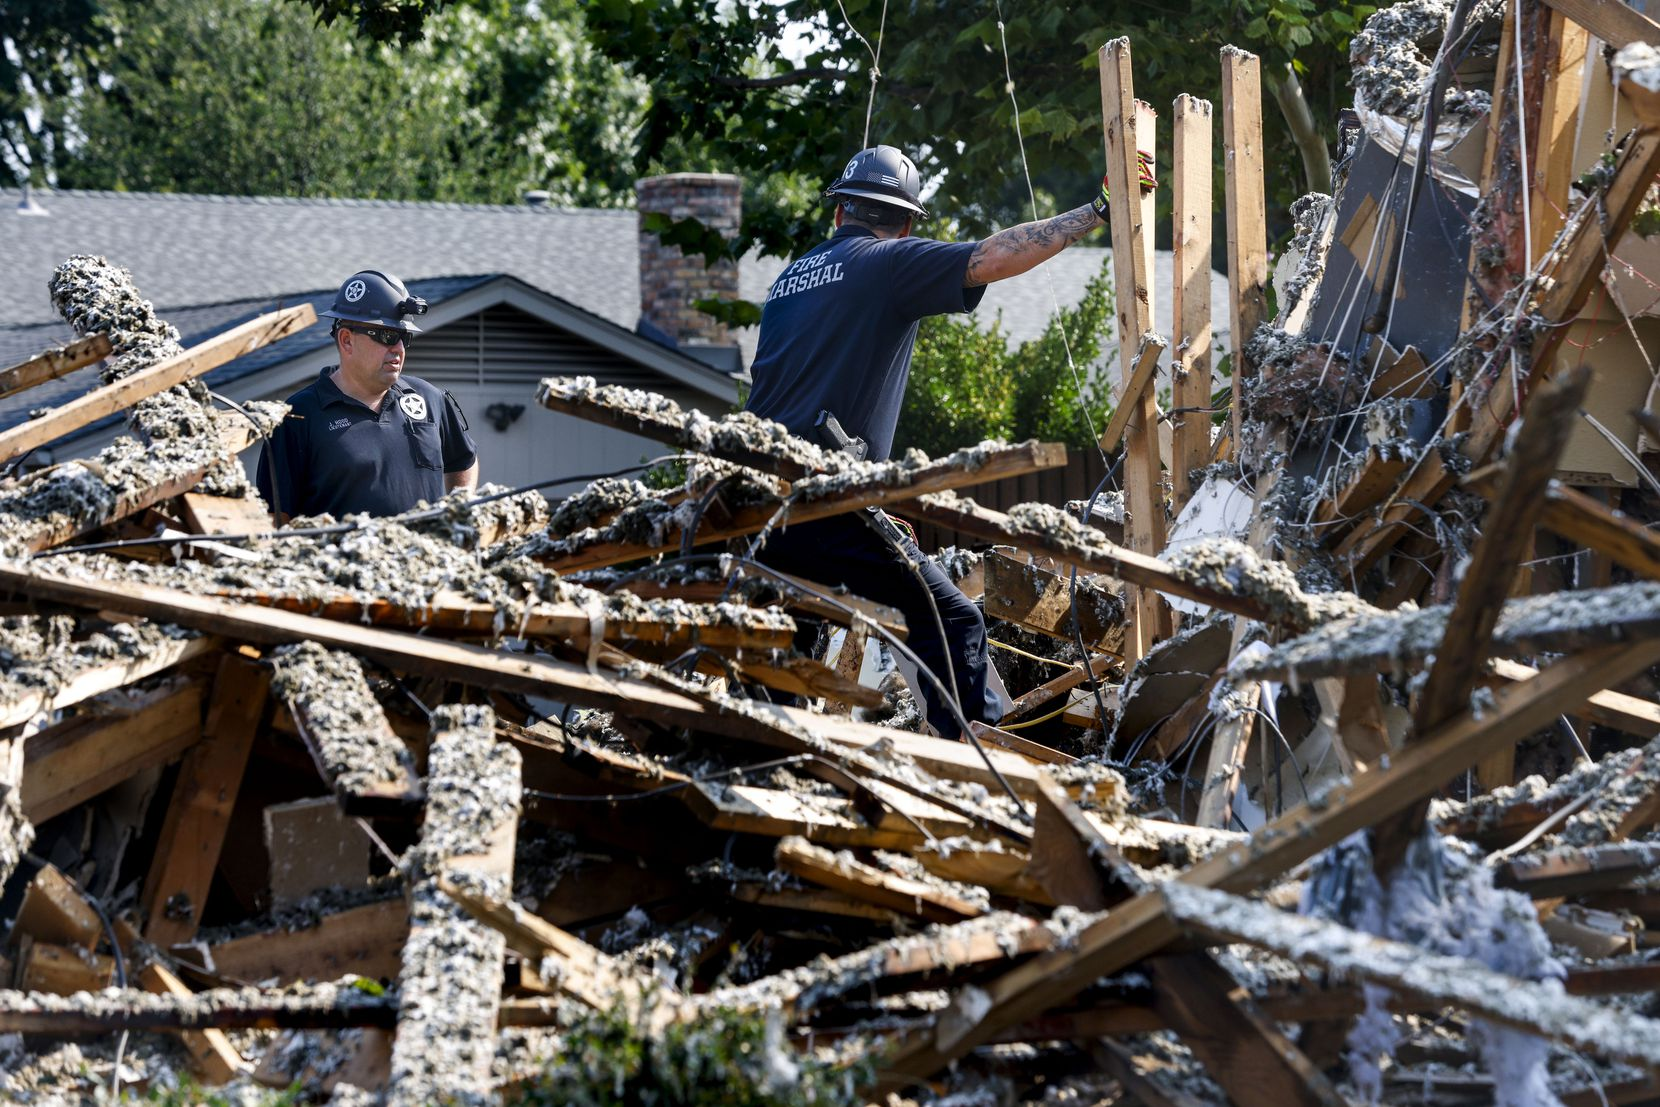 Inspectors from the Plano Fire Marshall office examine the site of a house explosion on the 4400 block of Cleveland Drive in Plano, Texas, on Tuesday, July 20, 2021. The explosion, which happened Monday, left six people hospitalized and was likely due to an isolated gas leak, fire investigators said.